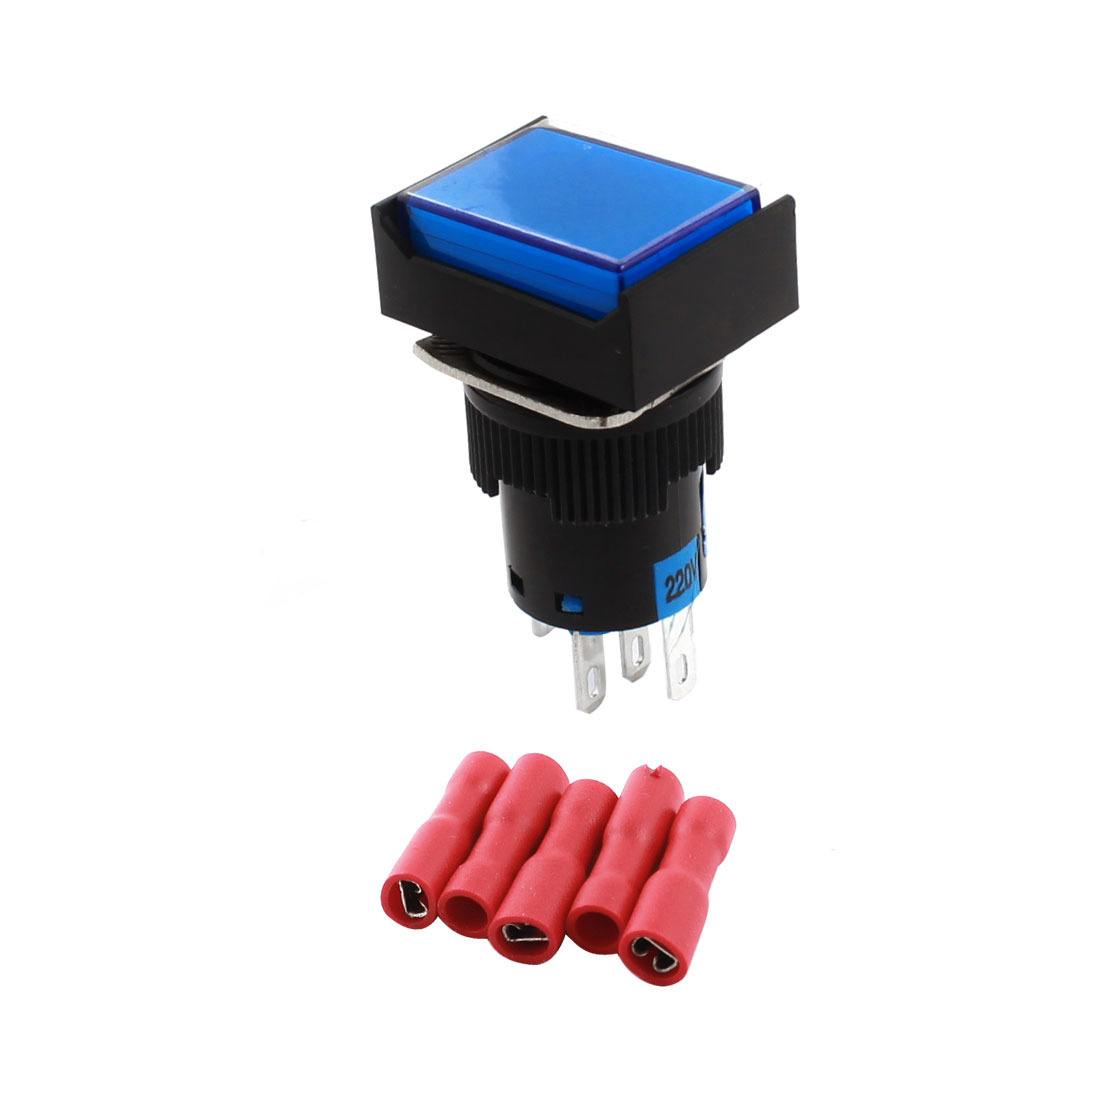 AC 220V Blue Light NO NC Momentary Rectangle Pushbutton Switch w Spade Connector